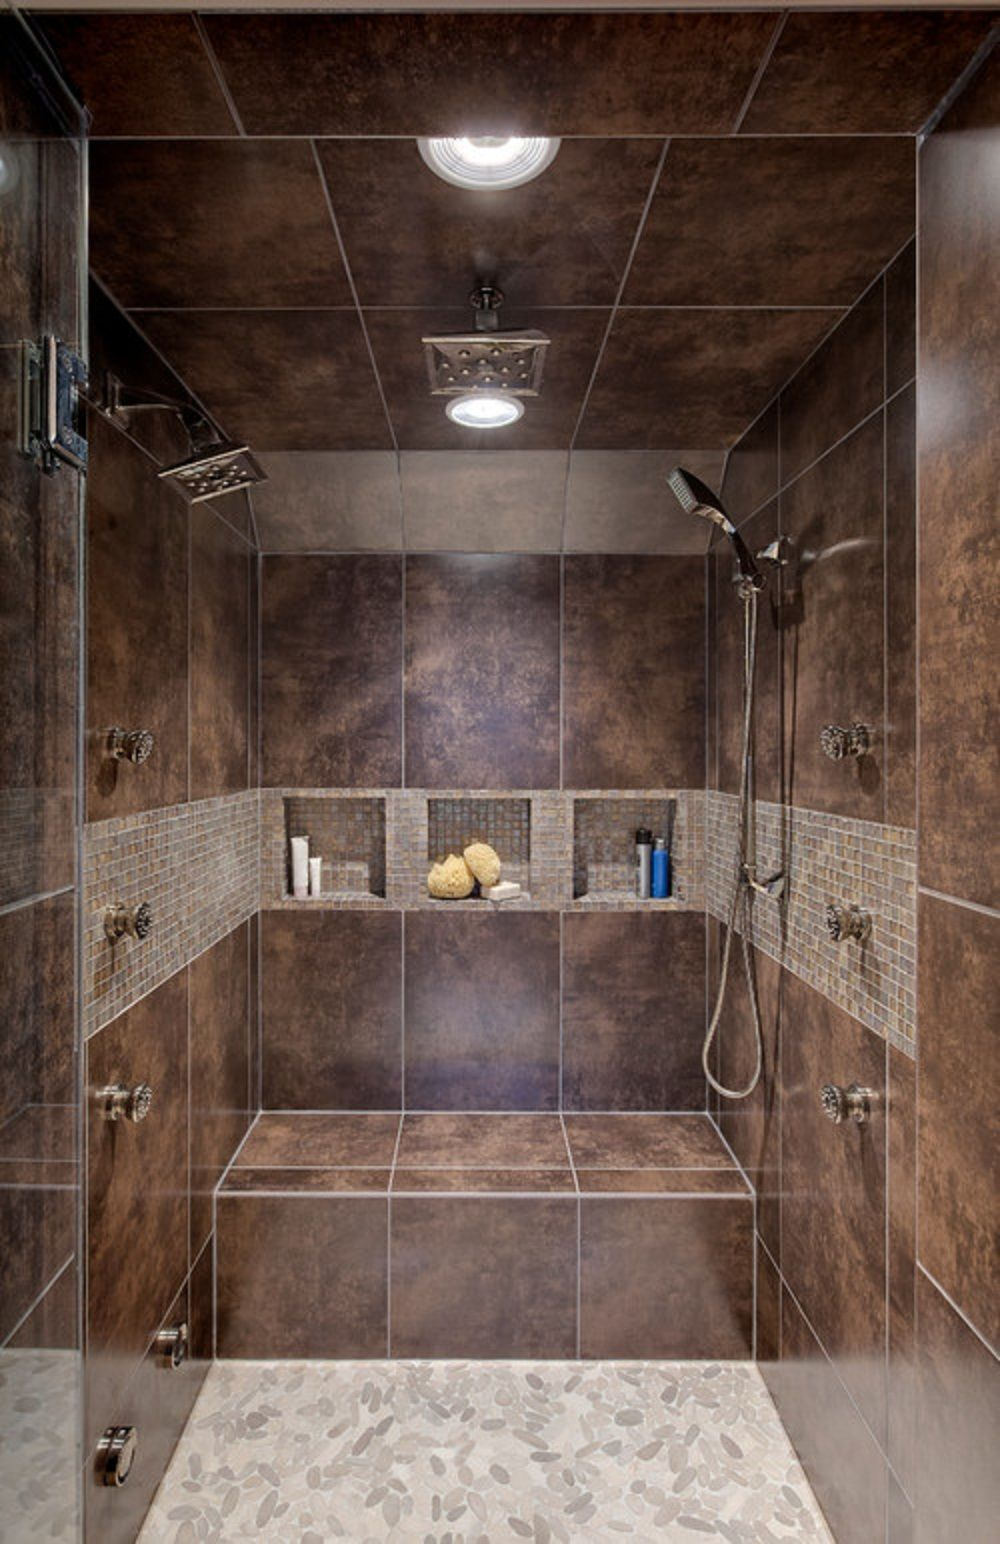 Bathroom Small Square Wall Niches Mixed With Brown Tile Bench In Classy Walk In Shower Ideas Gorgeous Bathroom Shower Design Shower Remodel Bathrooms Remodel